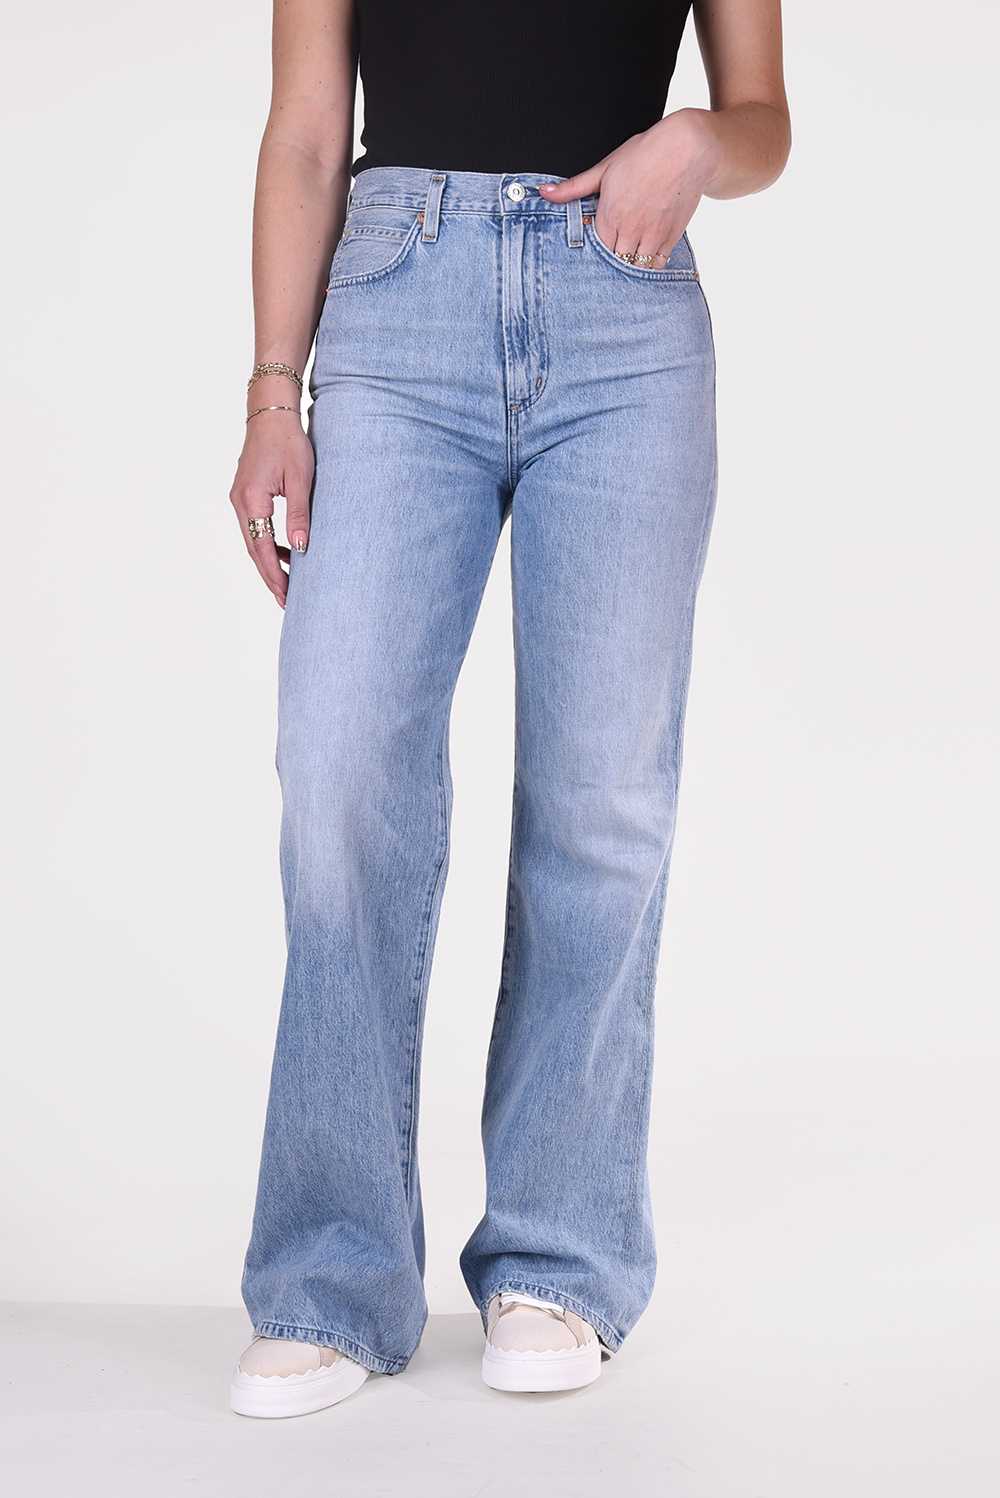 Citizens of Humanity jeans Rosanna 1944-1136 blauw